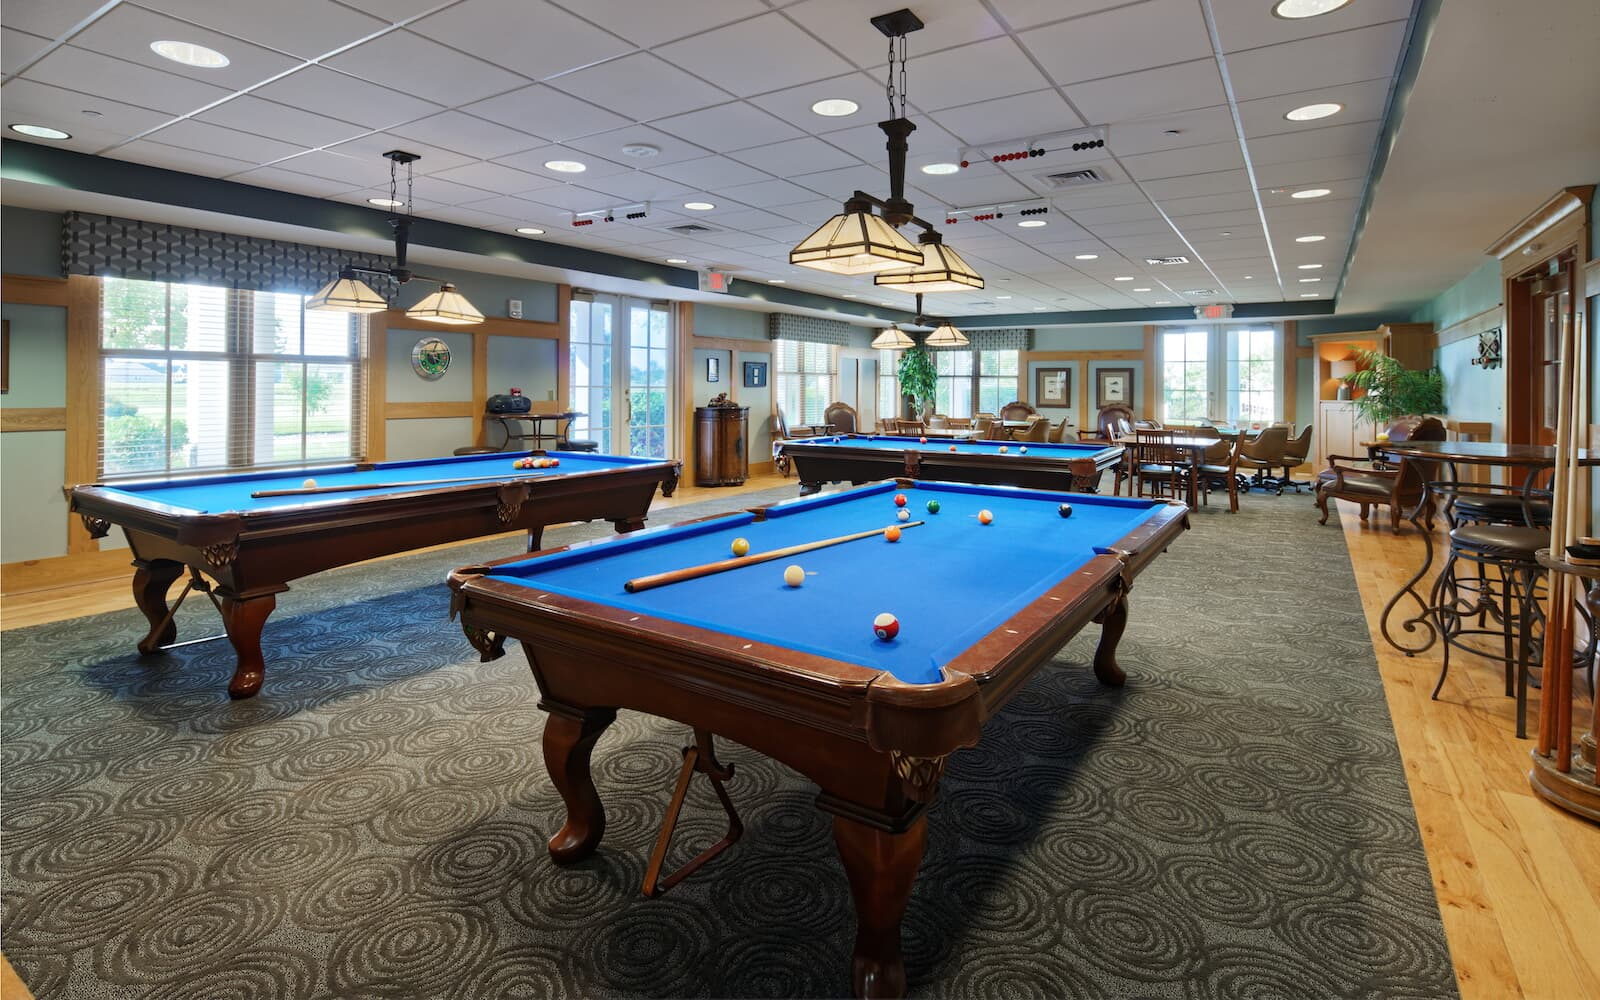 heritage-shores-pool-tables-active-adult-brigeville-de-heritage-shores-brookfield-residential